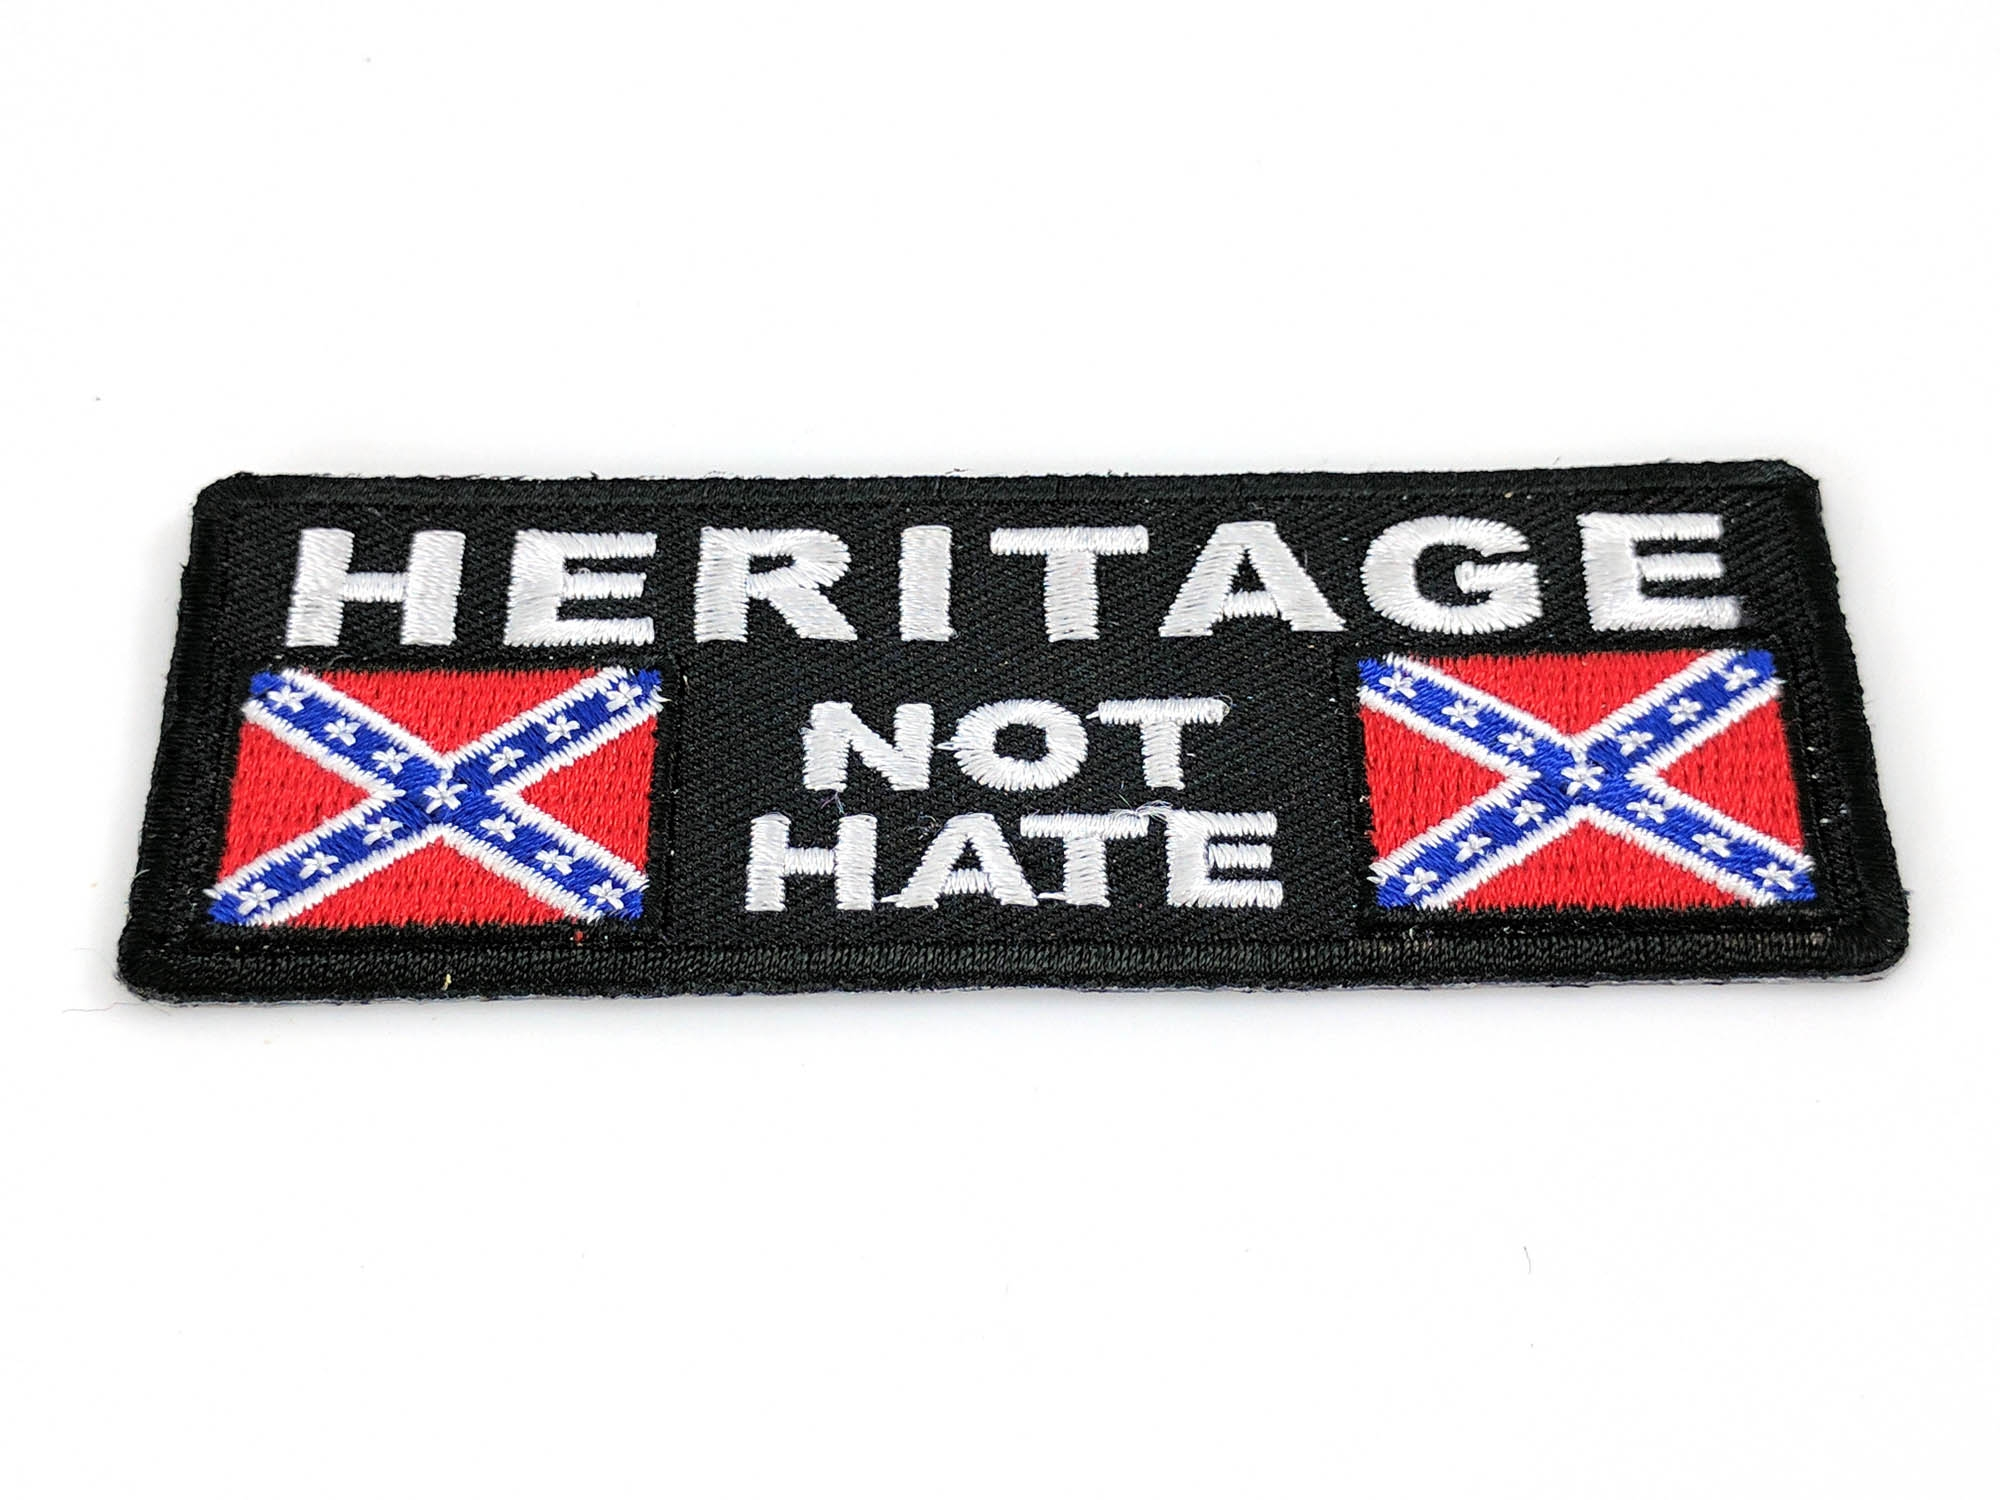 the rebel flag hate or heritage Today, the use of the confederate flag is often controversial while a number of non-extremists still use the flag as a symbol of southern heritage or pride, there is growing recognition, especially outside the south, that the symbol is offensive to many americans however, because of the continued use of the flag by.